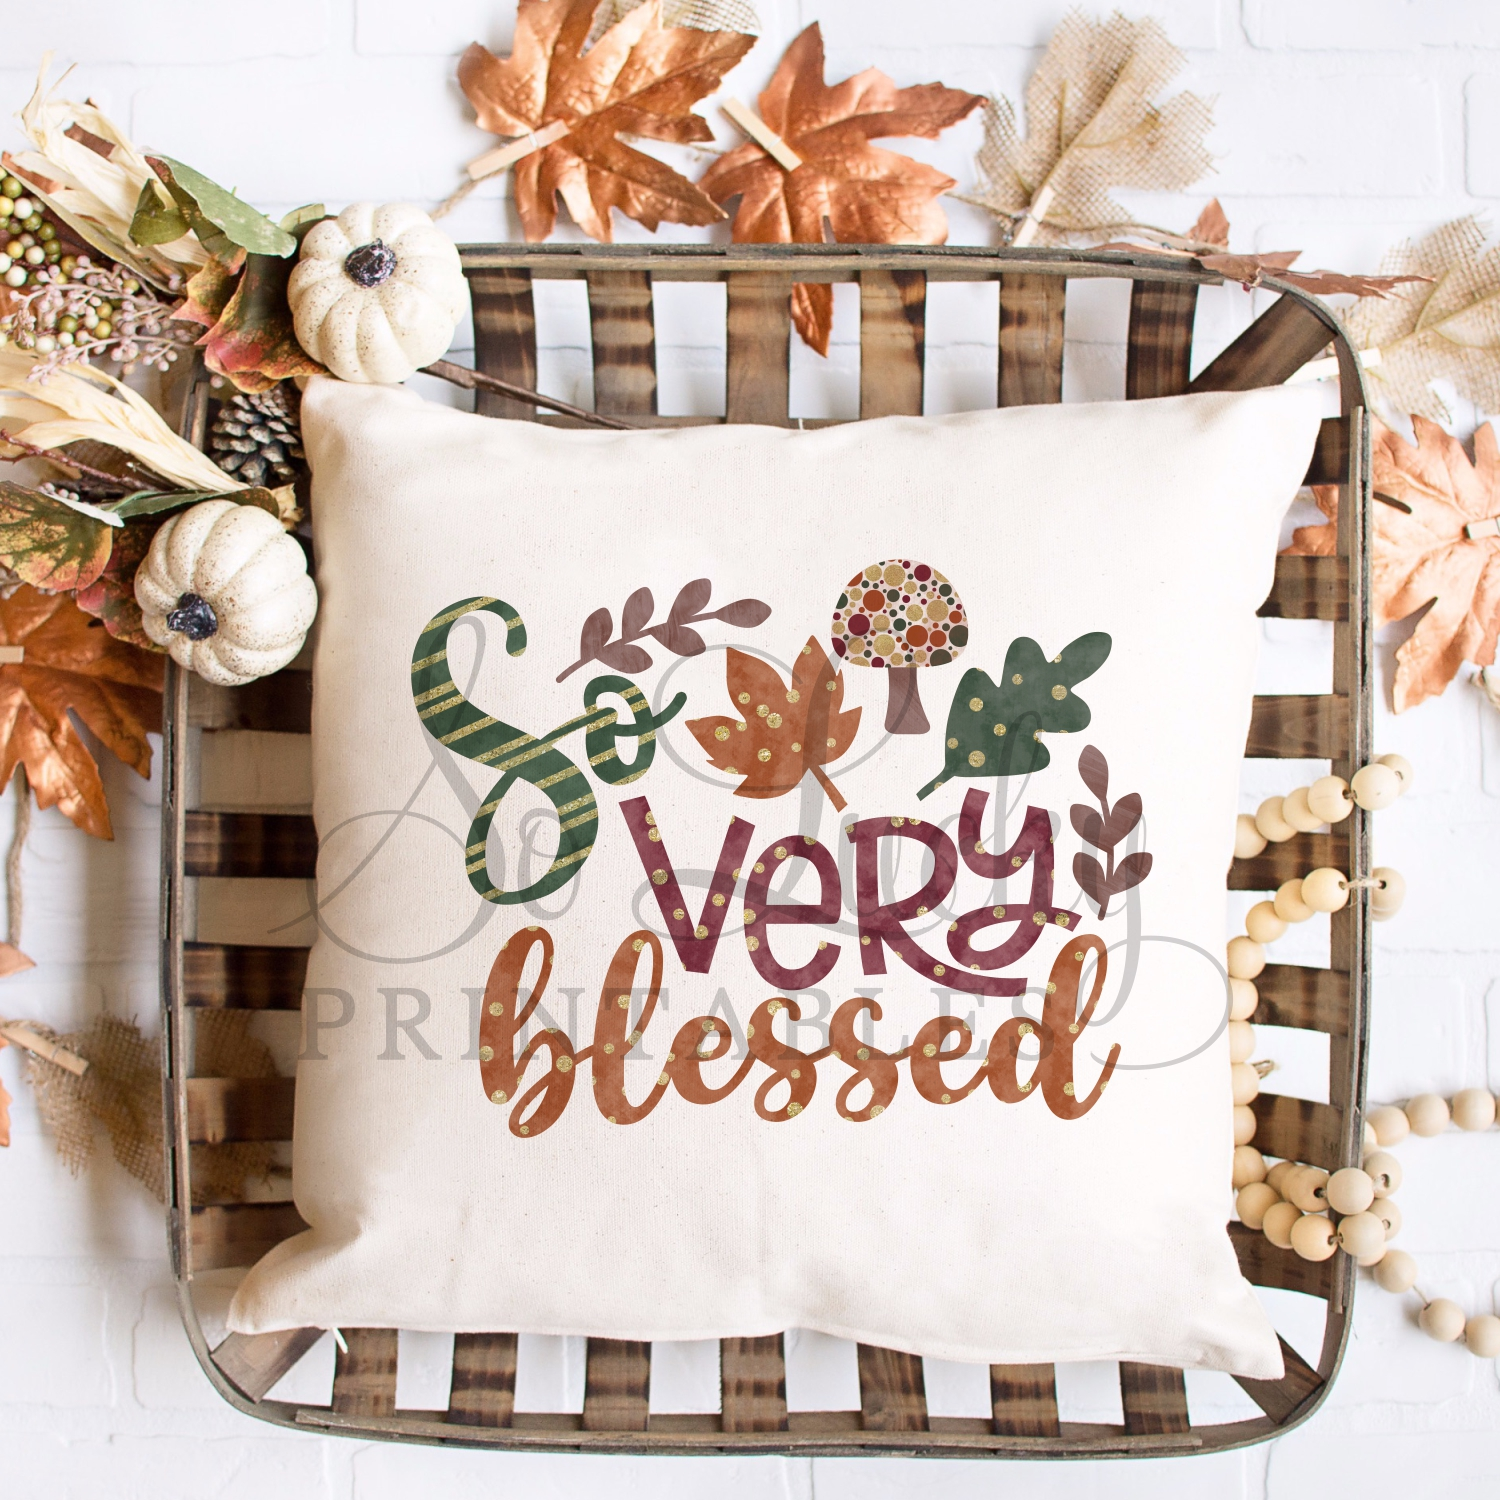 So very blessed watercolor printable sublimation design example image 2